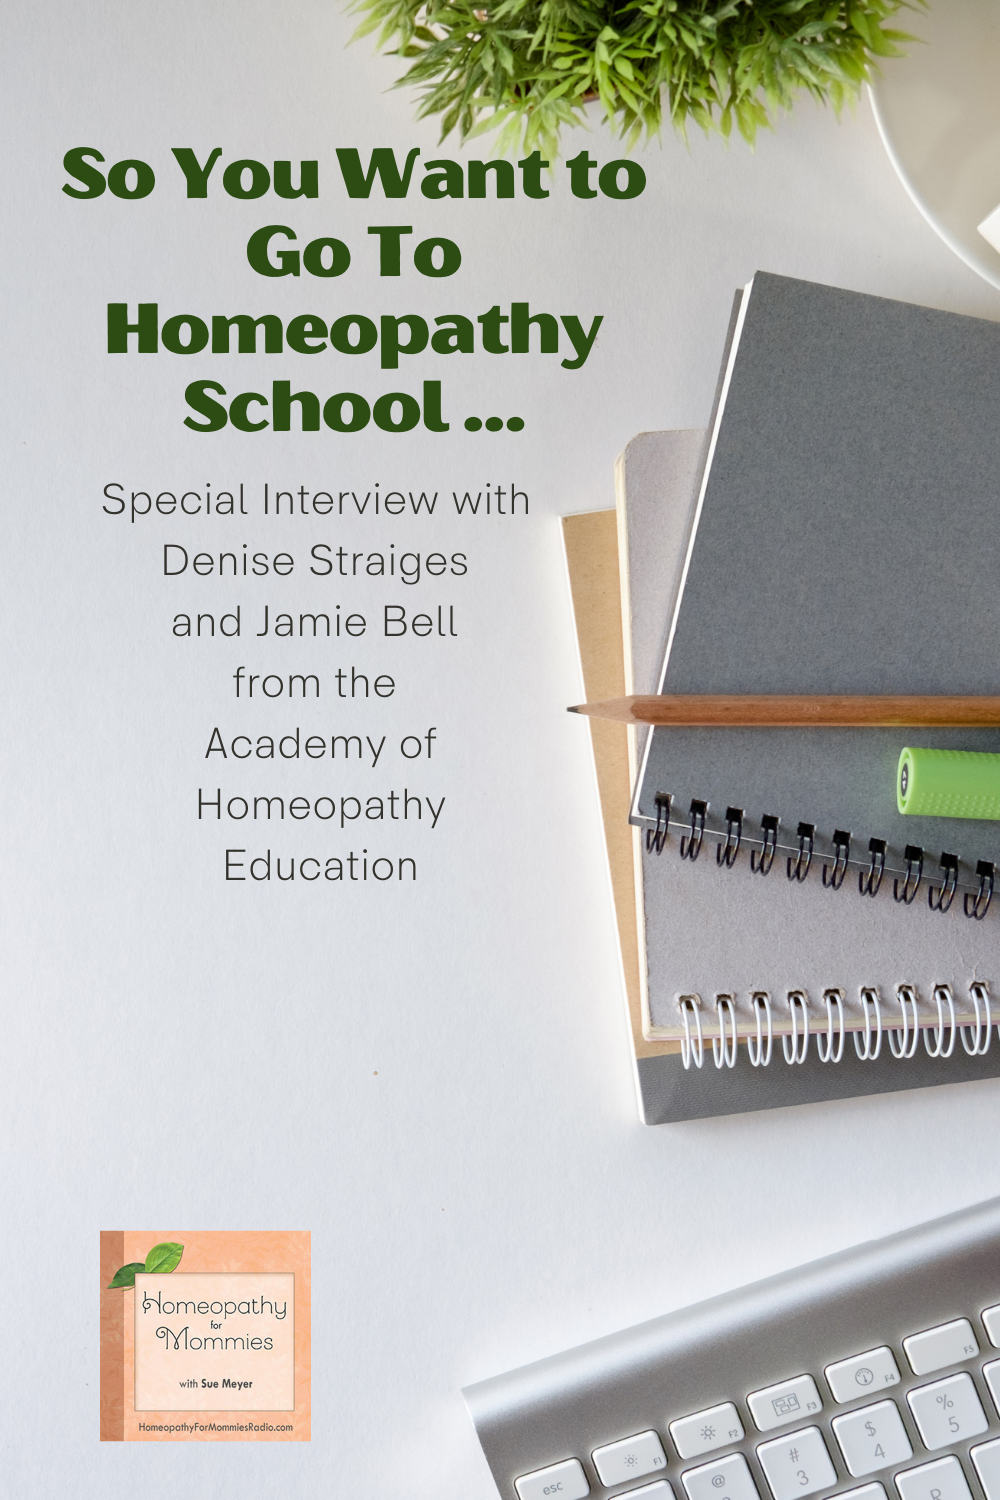 This week on Homeopathy for Mommies, Sue interviews two special guests from the Academy of Homeopathy Education about Homeopathy School Options for those who want to go to school to become a homeopath.